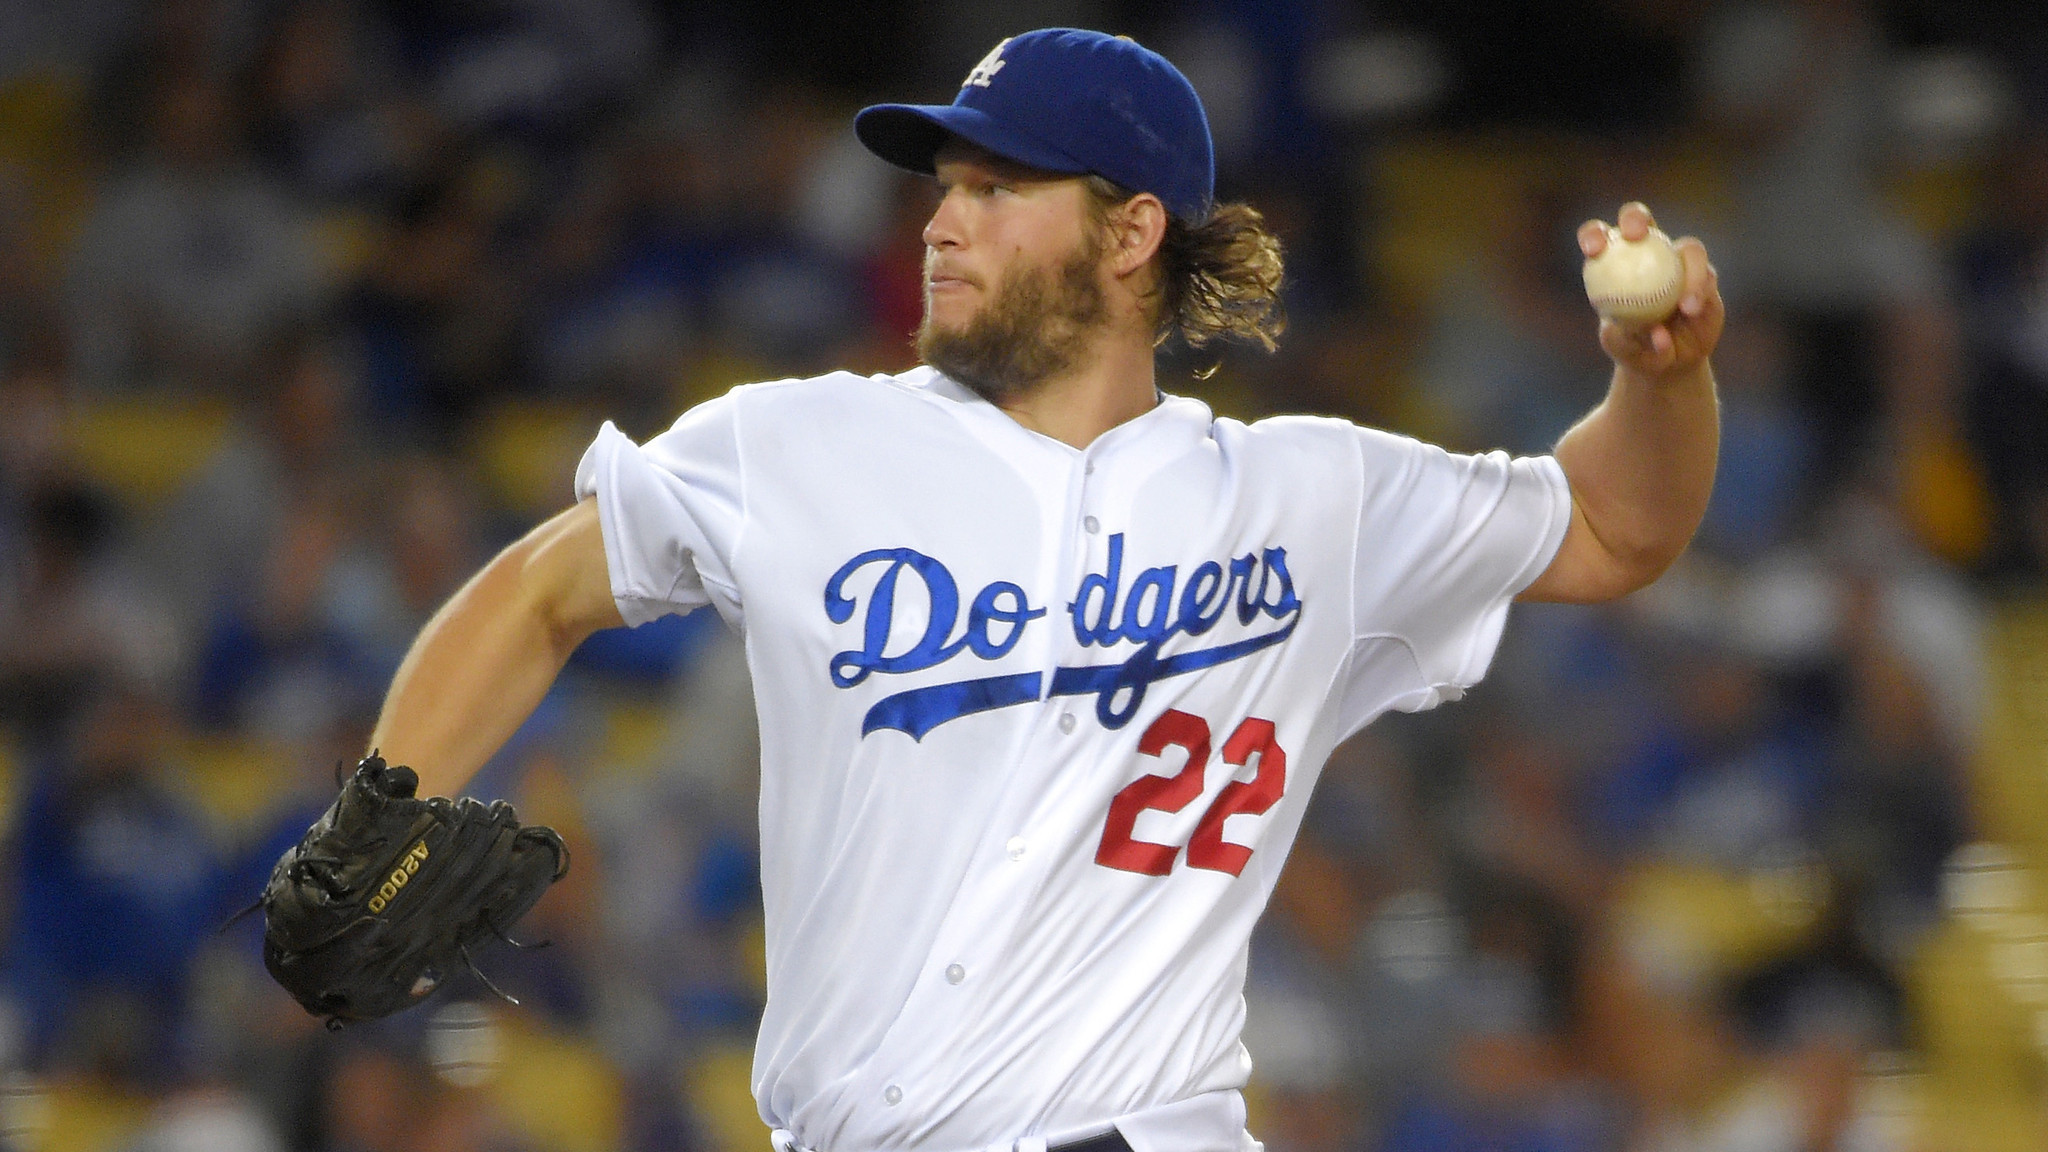 Start times announced for Dodgers' opening two playoff games